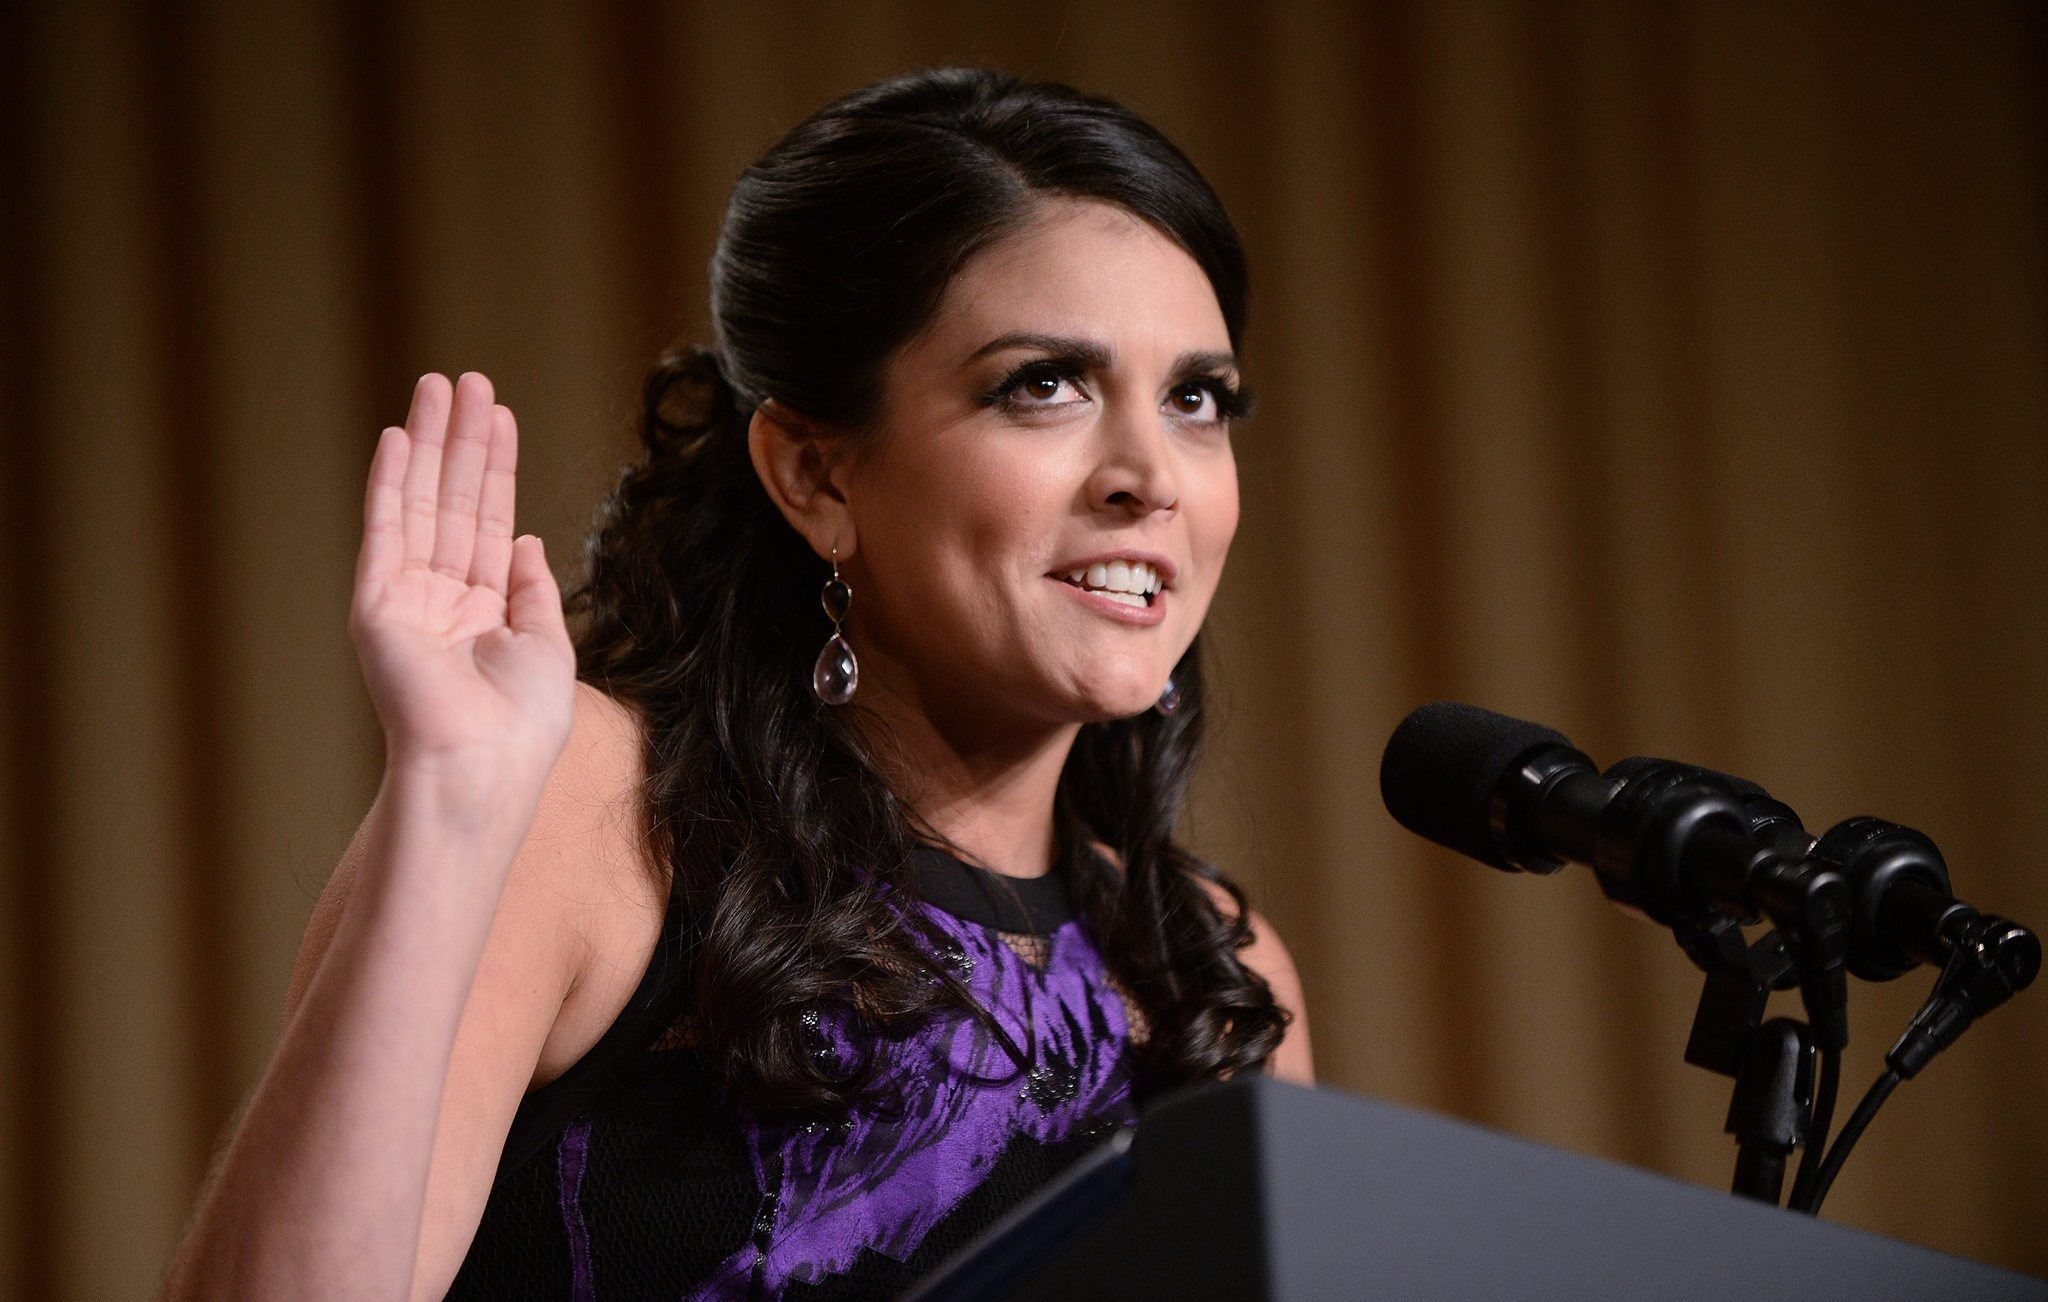 strong looks sharp at white house correspondents' dinner - chicago